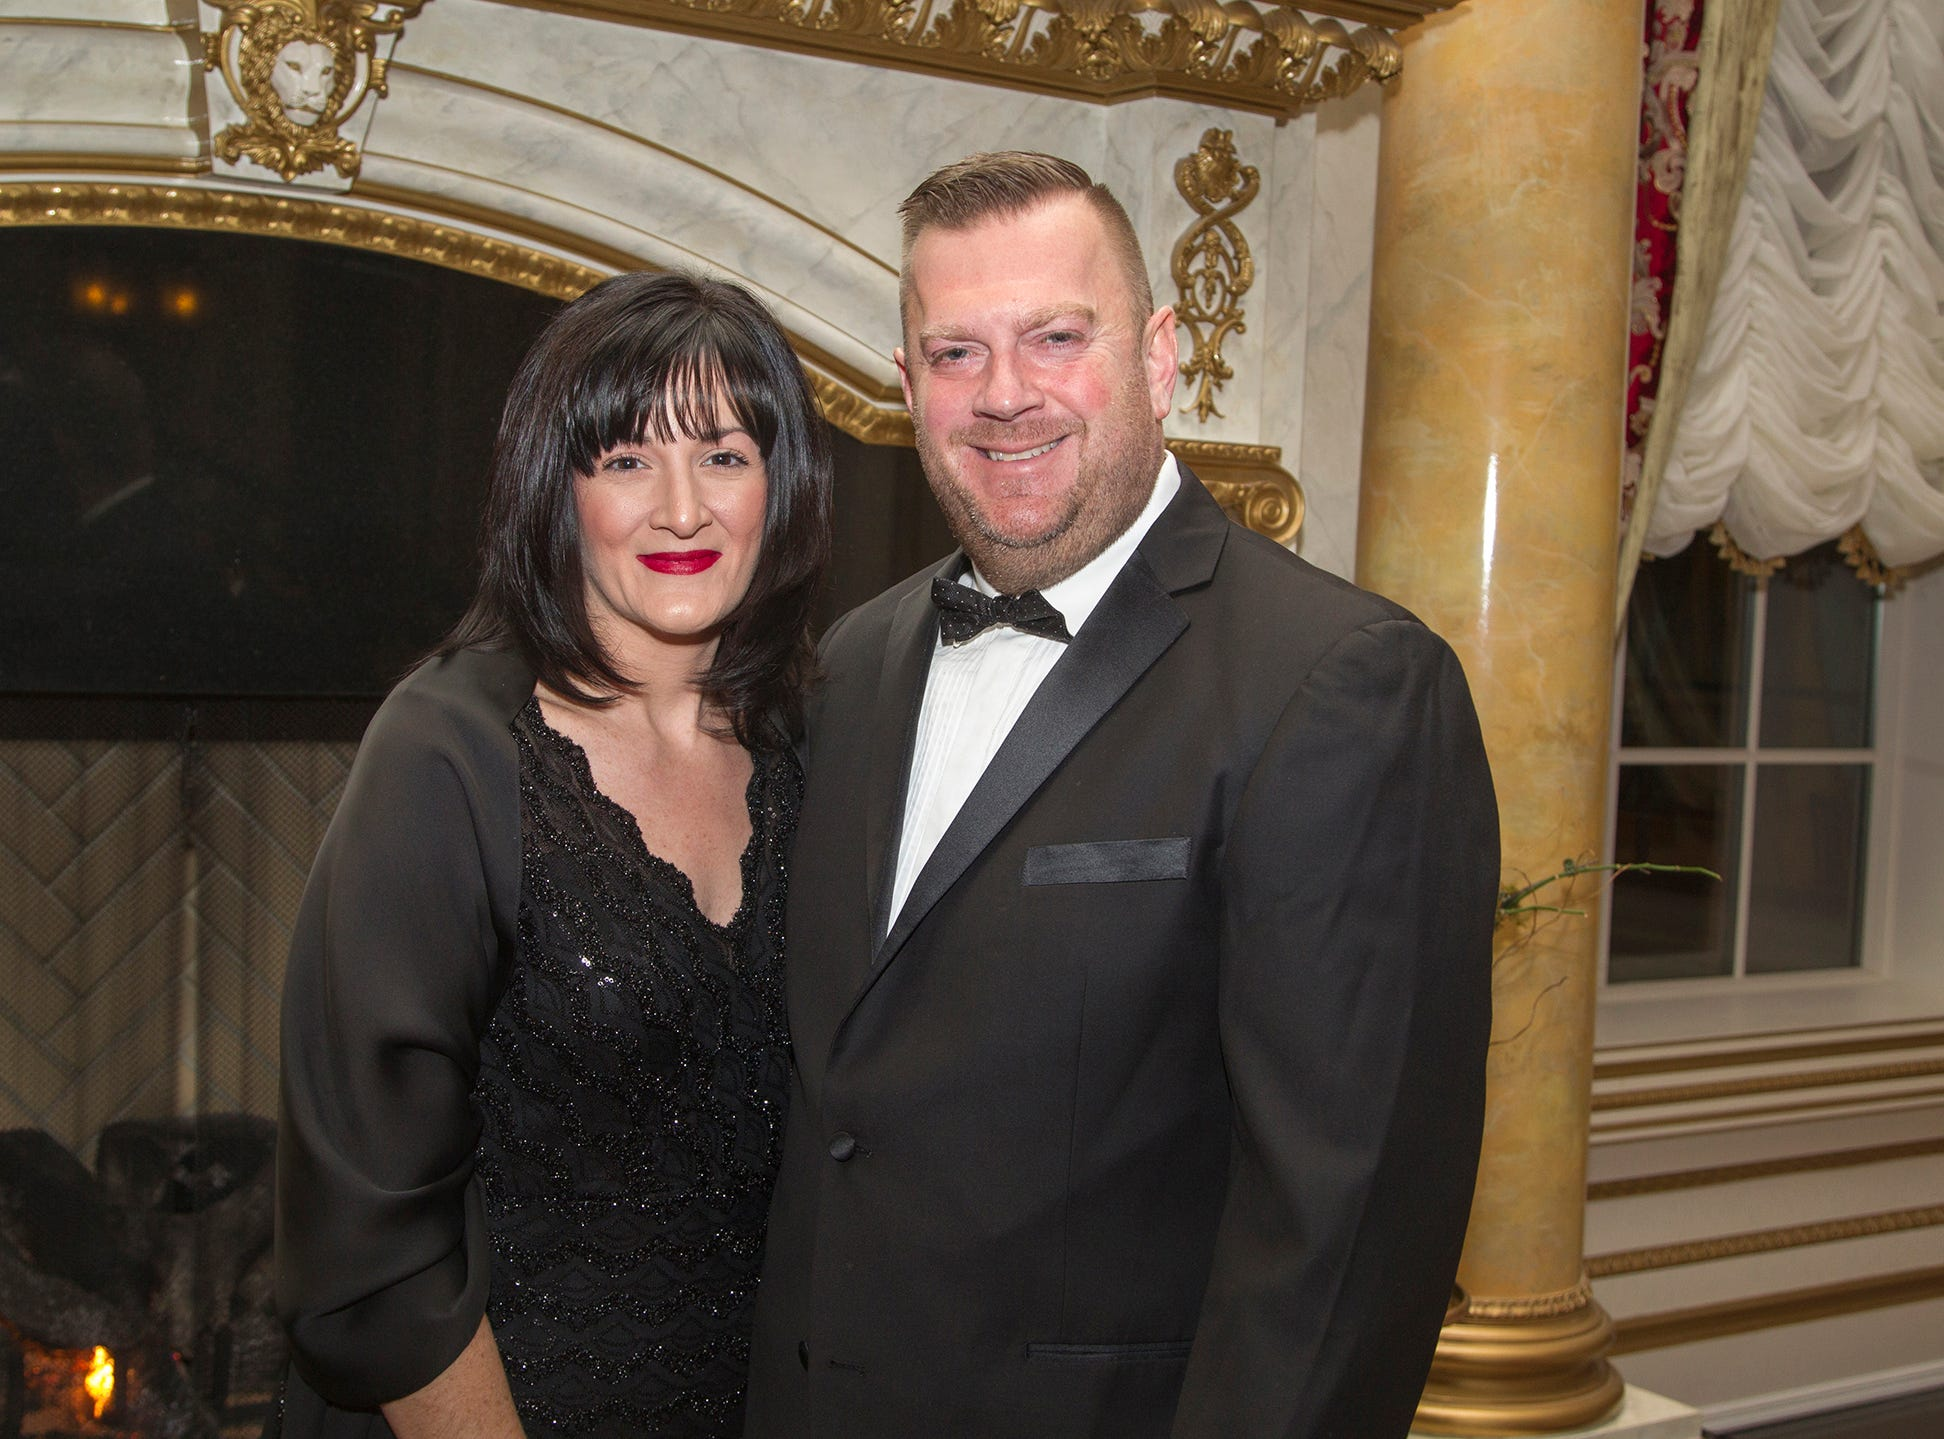 Chris and Rita Lemley. The 72nd Annual Valley Ball gala at The Legacy Castle in Pompton Plains. 11/16/2018